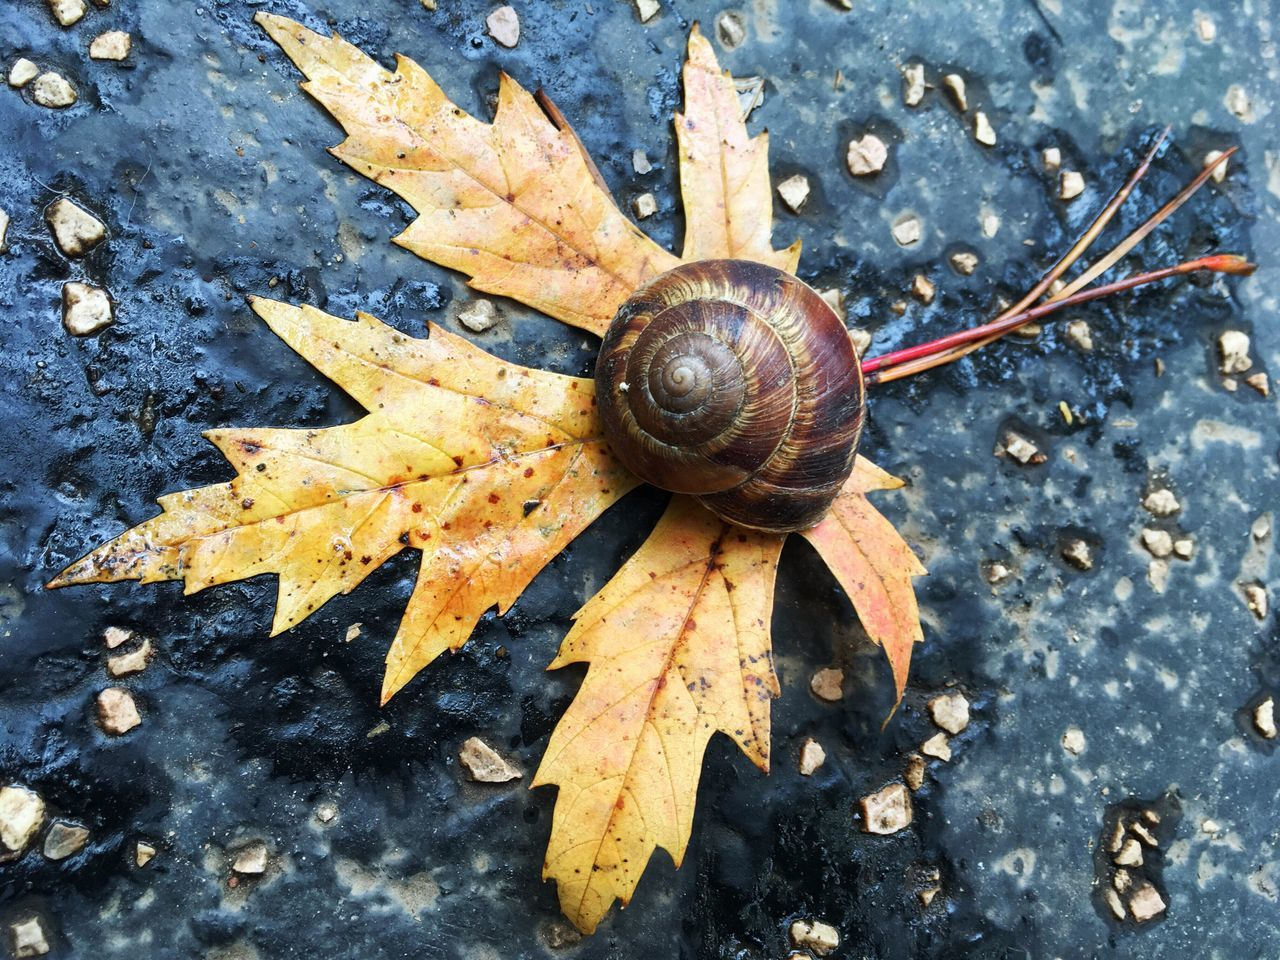 Exploring Style Leaf Snail Autumn Animal Themes High Angle View Nature Outdoors No People One Animal Fragility Change Close-up Day Animals In The Wild Gastropod Pavement Concrete After Rain Nature On Your Doorstep